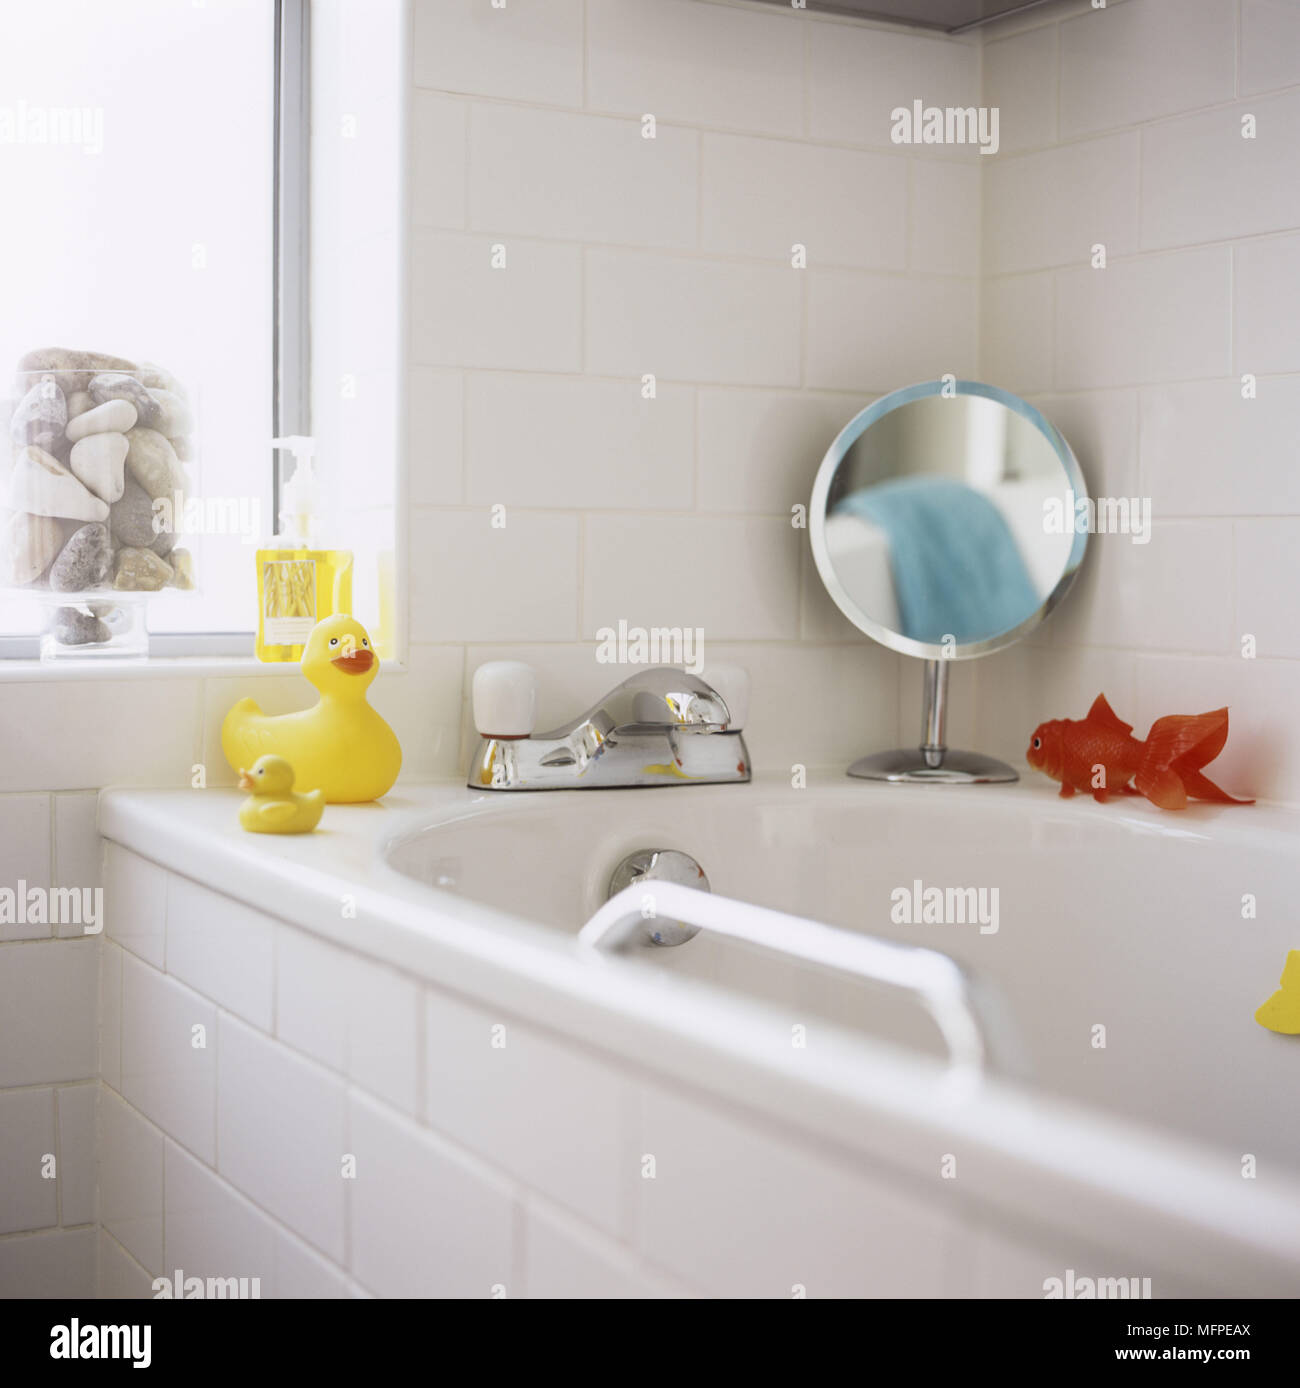 Bathroom with white tiling around the bath and walls with a yellow ...